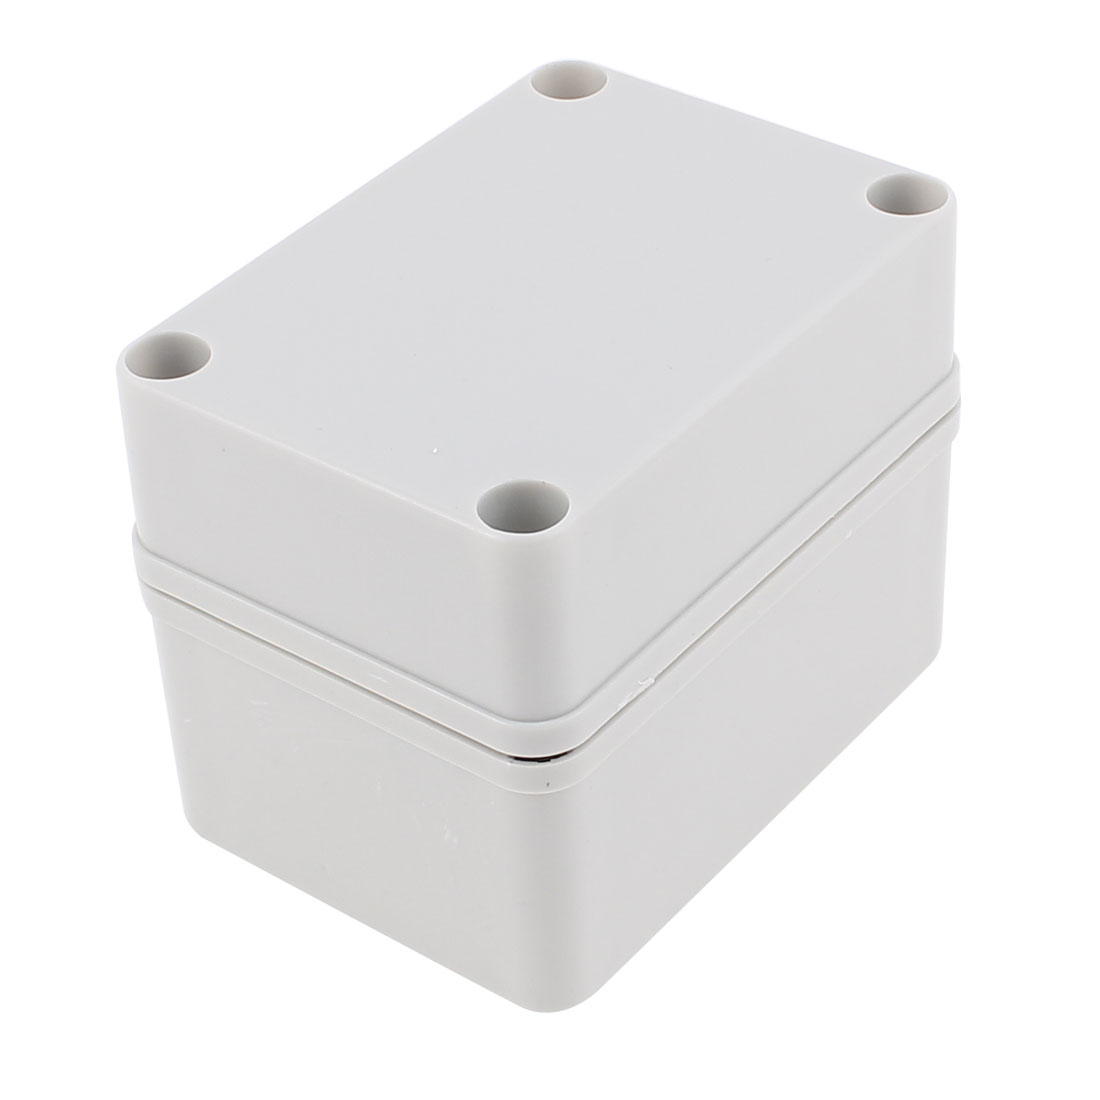 110 x 85 x 80mm Dustproof IP65 Junction Box Terminal Connecting Box Enclosure